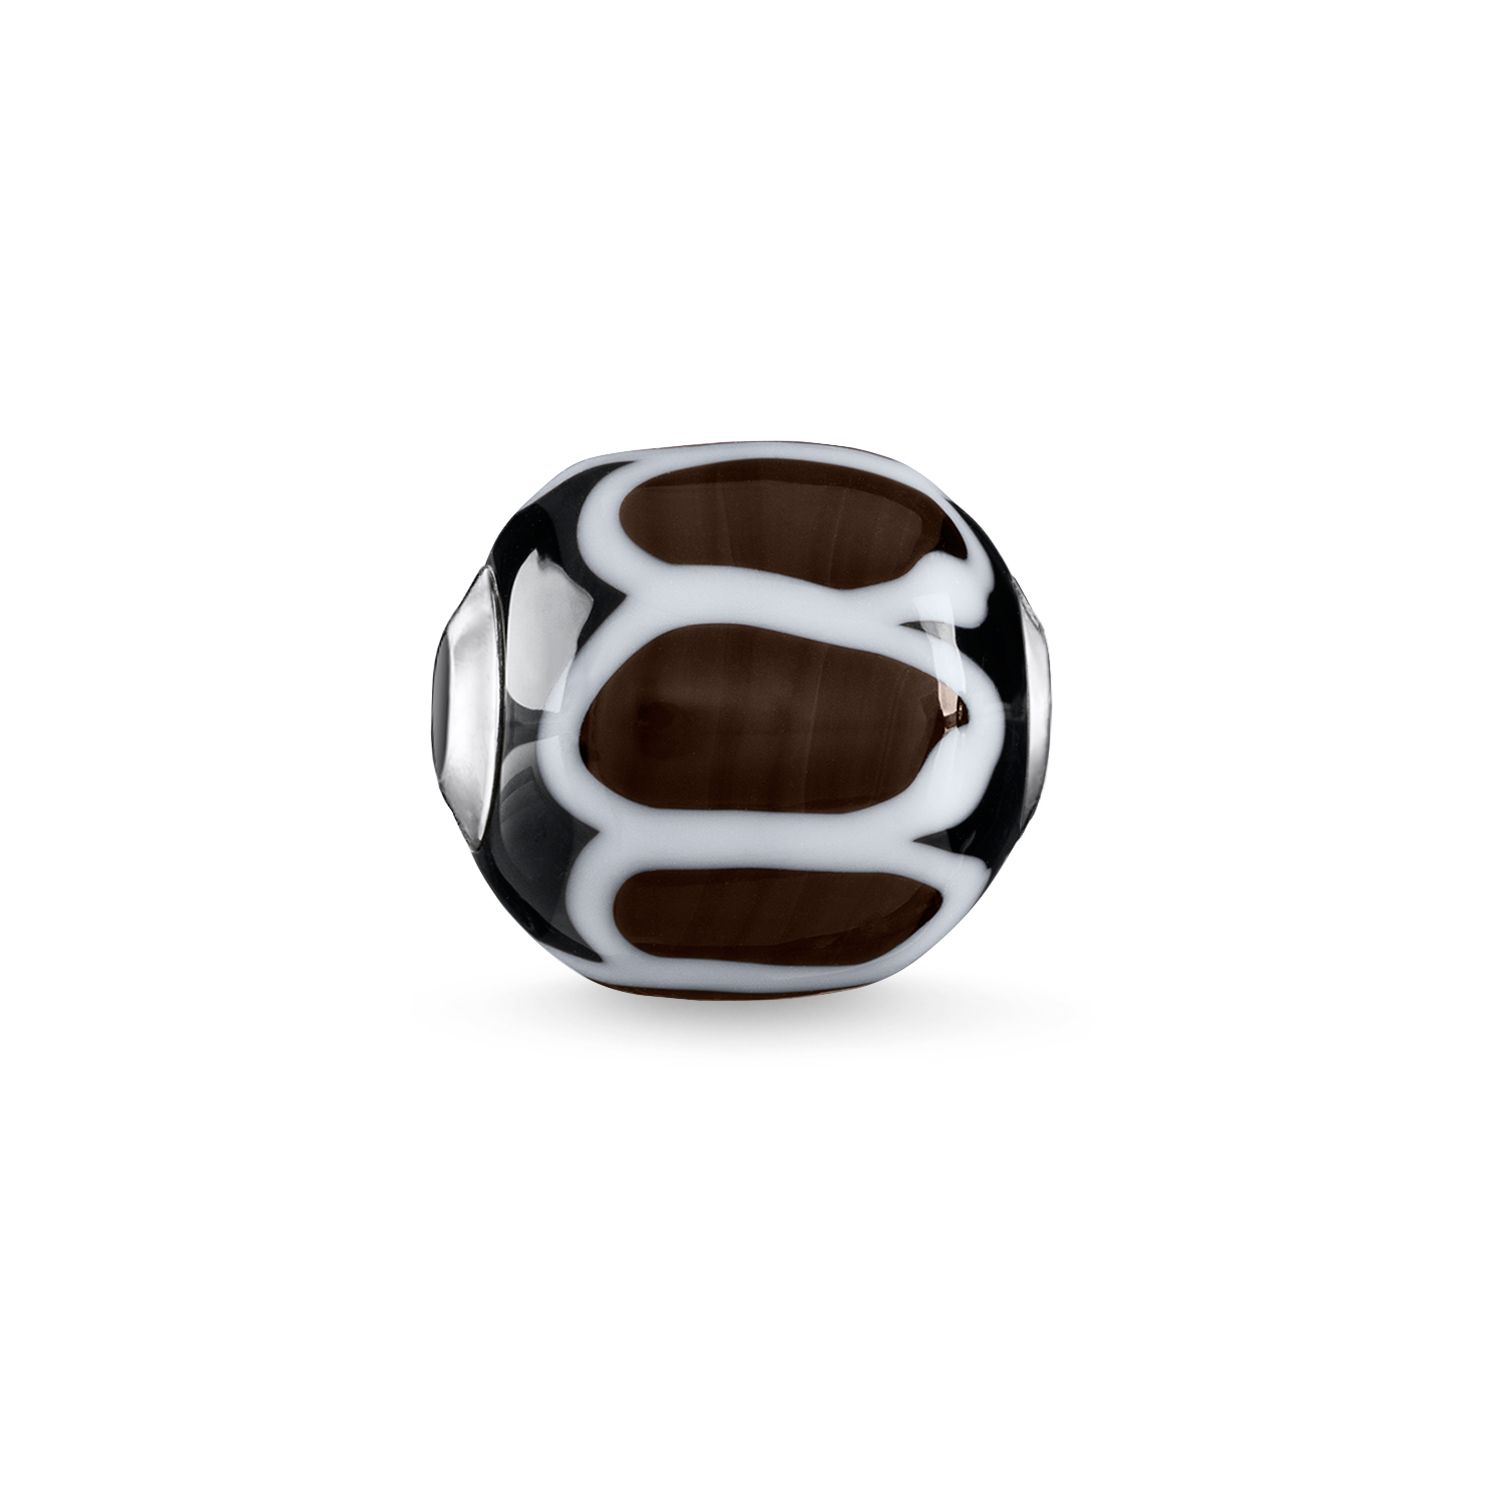 Thomas Sabo Brown Glass Handcrafted Africa Karma Bead Metallic